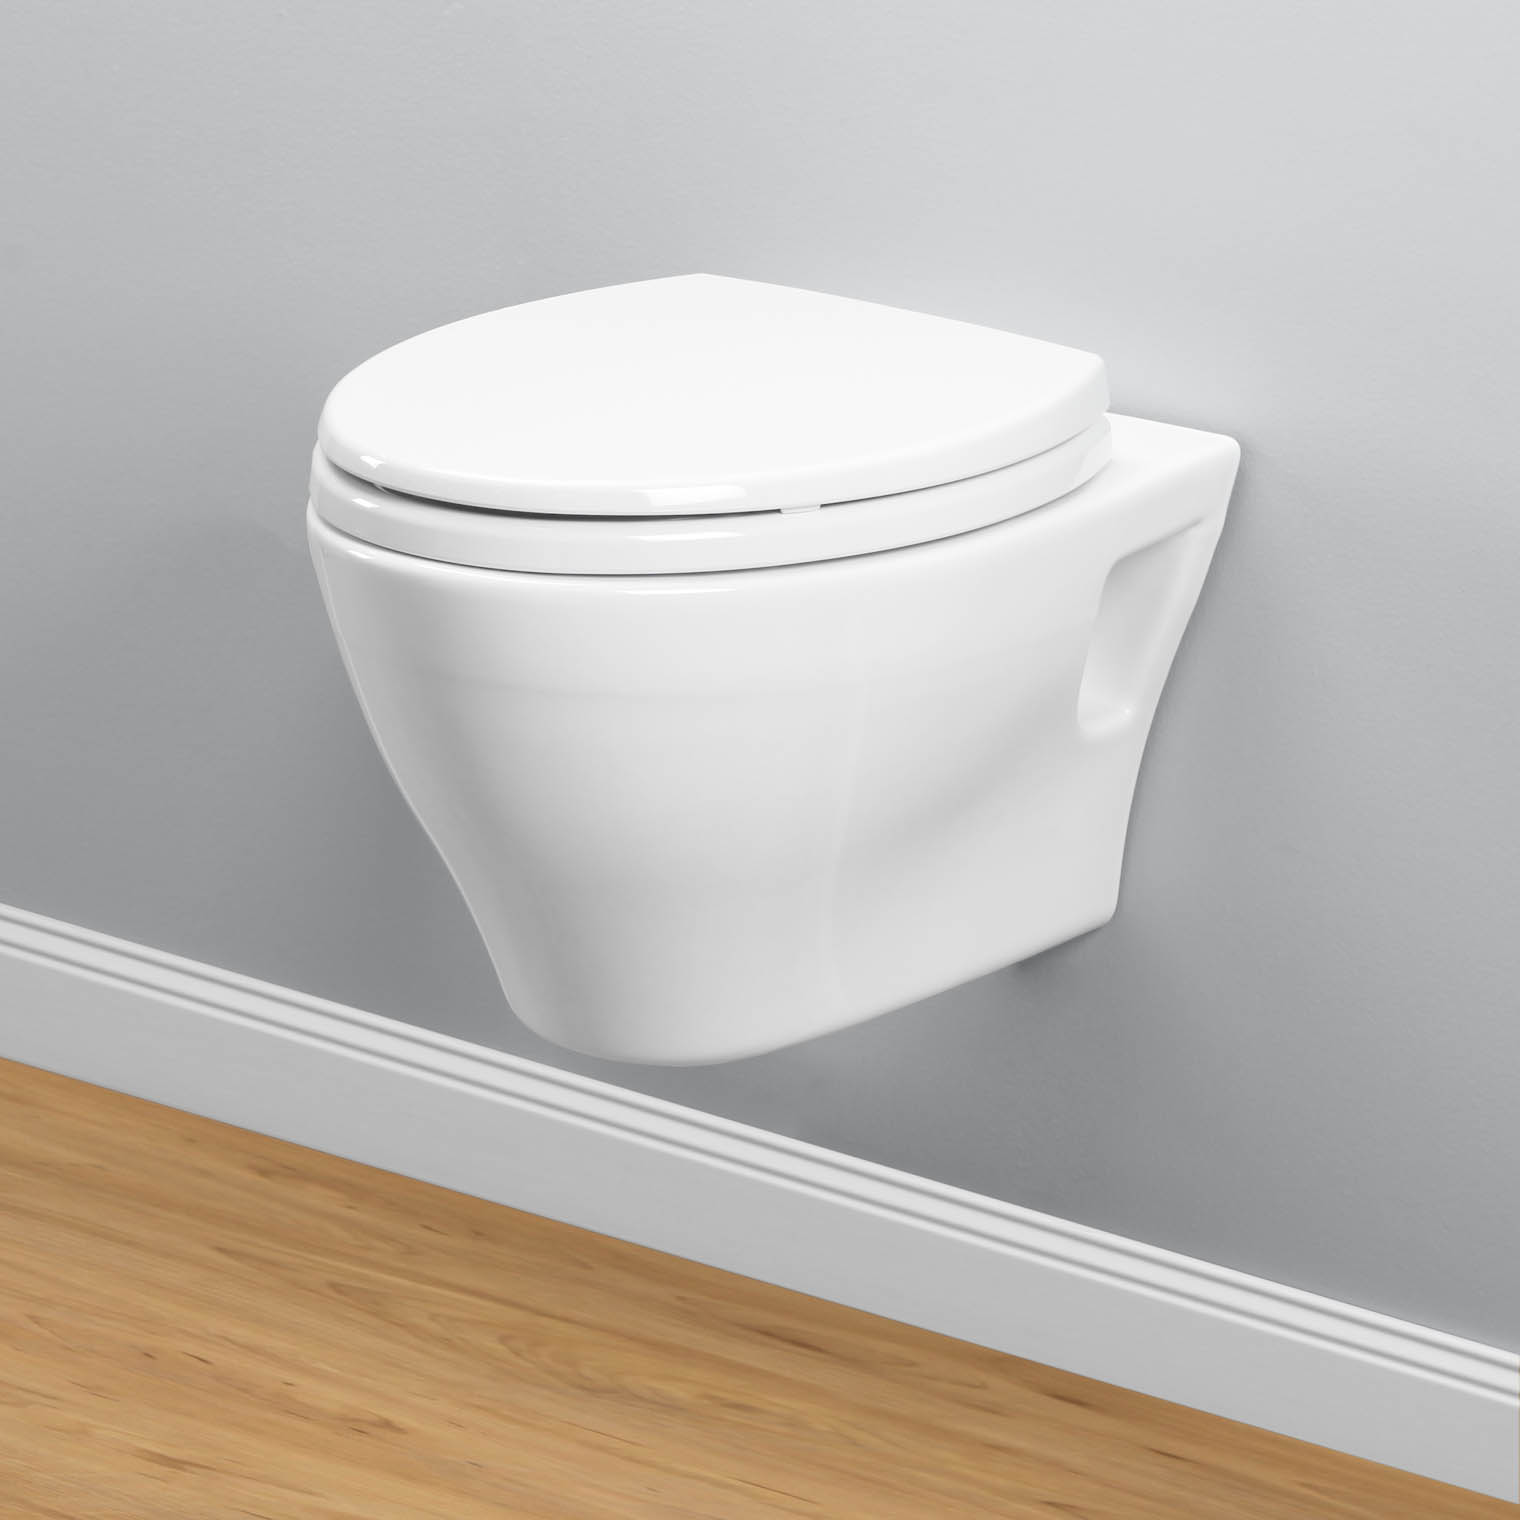 toto soft close toilet seat toto toilet toto replacement parts